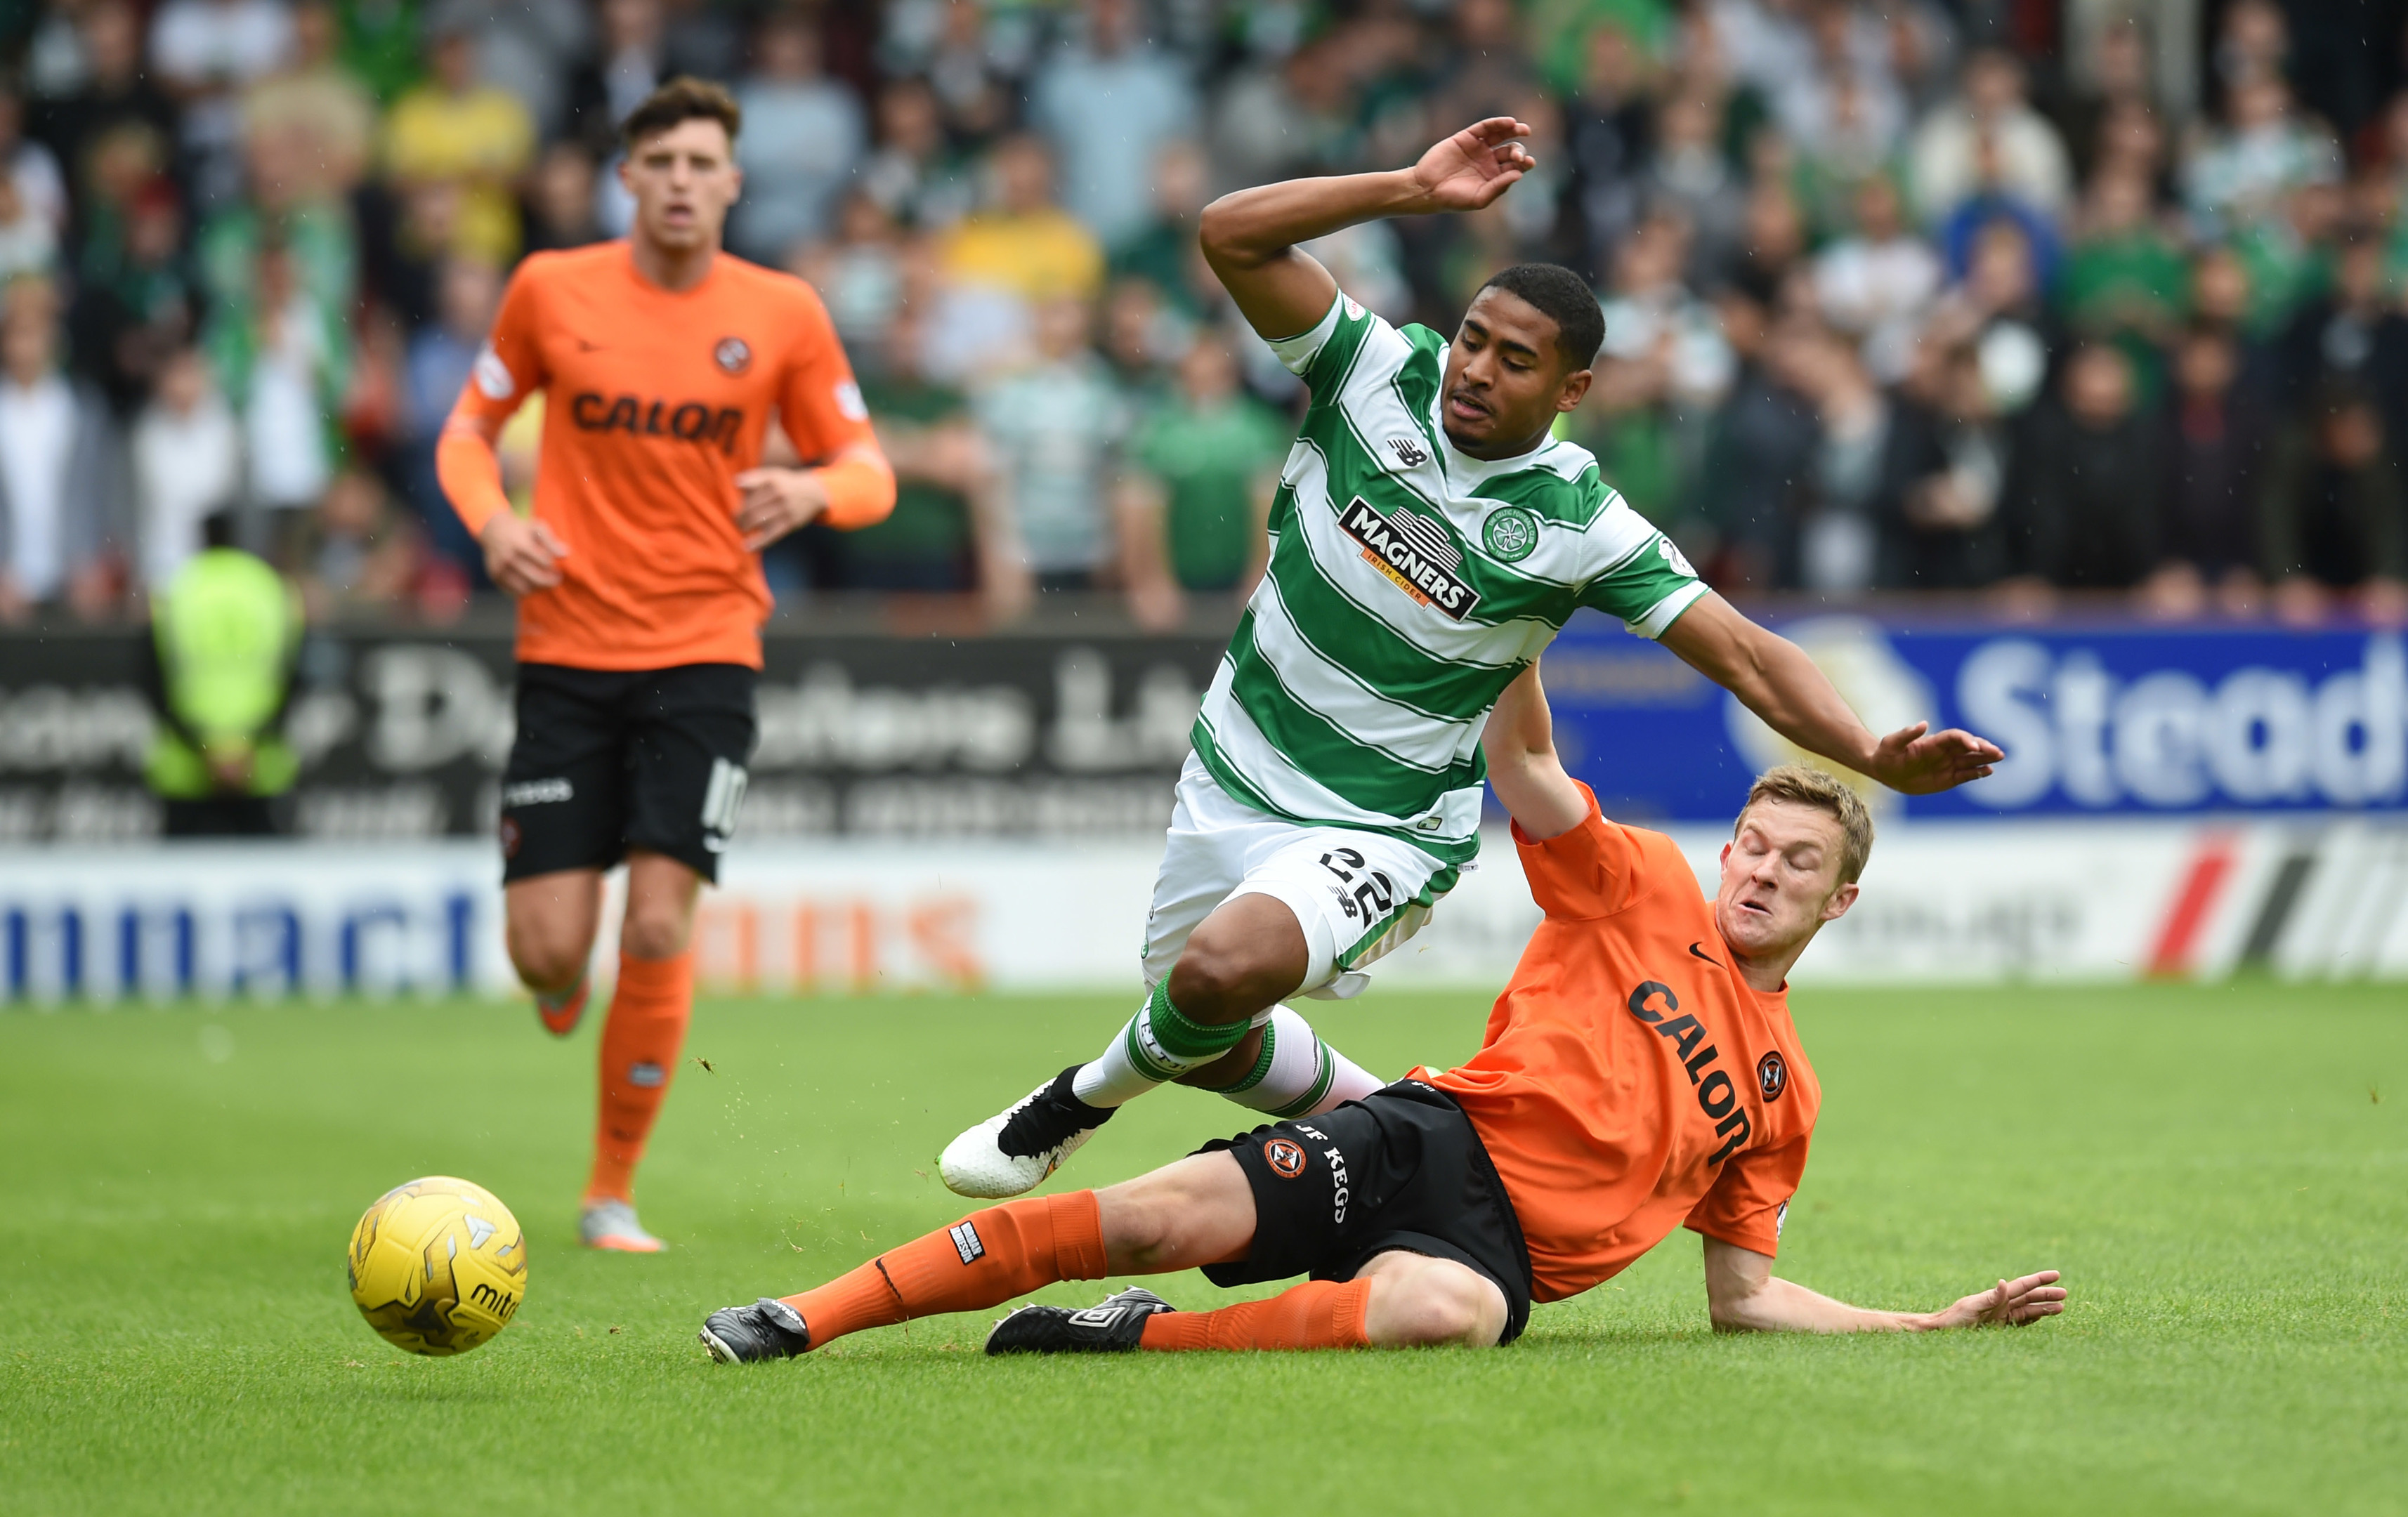 Dundee United full-back Paul Dixon tackles Celtic's Saidy Janko